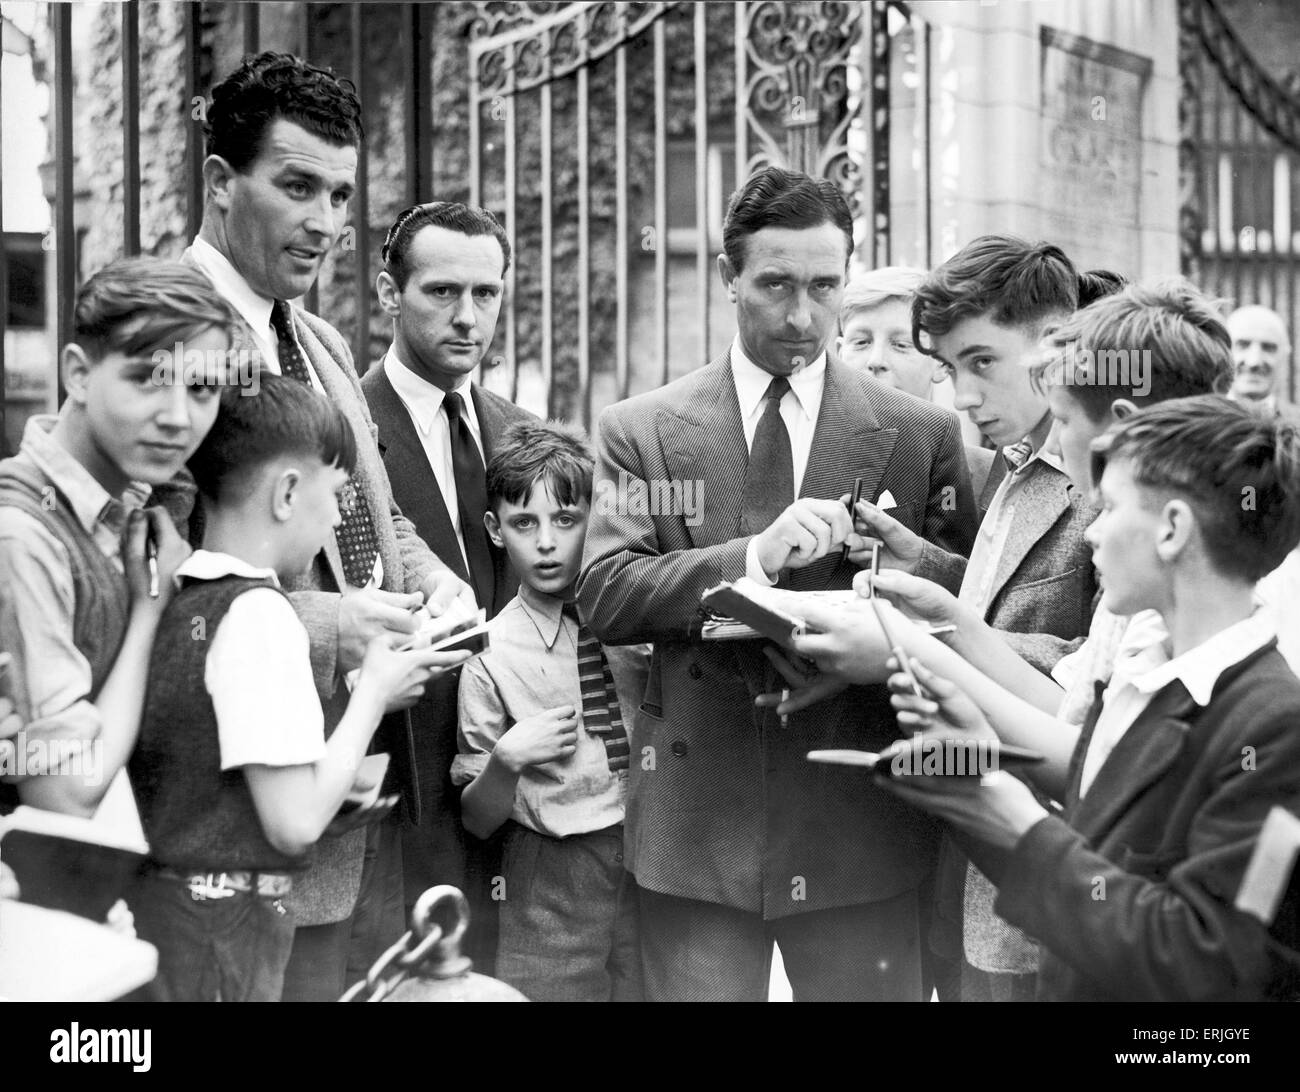 The Compton brothers, Denis and Leslie, beseiged by autograph hunters at Lord's cricket ground. 11th June 1952. - Stock Image